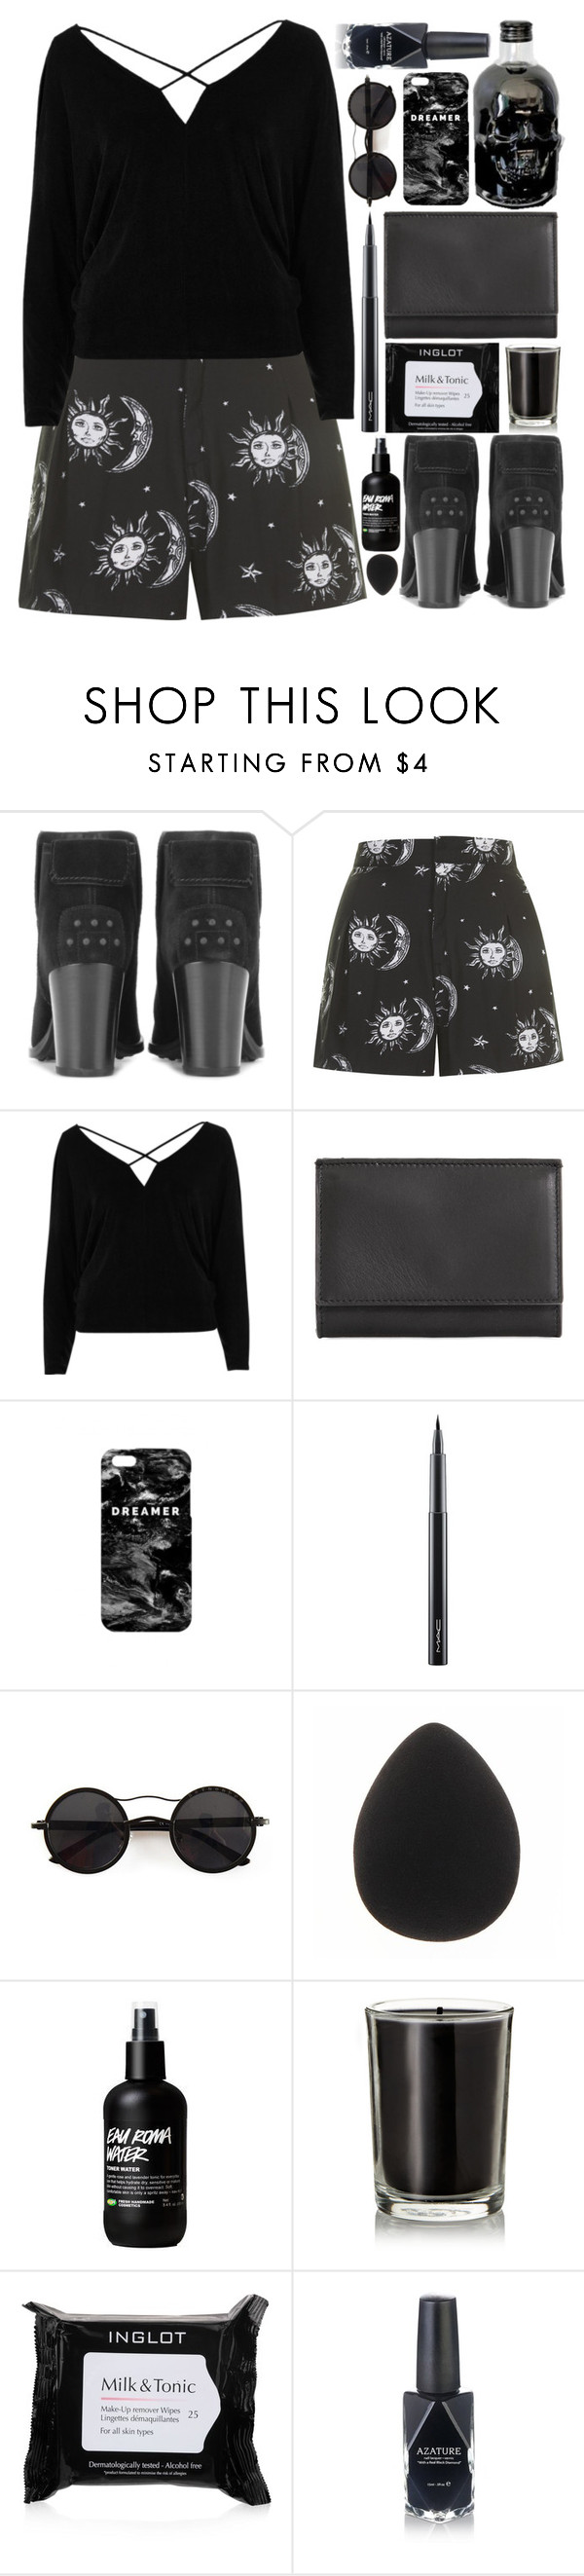 """Milk & Tonic"" by ladyvalkyrie ❤ liked on Polyvore featuring Tod's, Motel, River Island, Maison Margiela, Mr. Gugu & Miss Go, MAC Cosmetics, Chicnova Fashion, Coqui Coqui, Inglot and Azature"